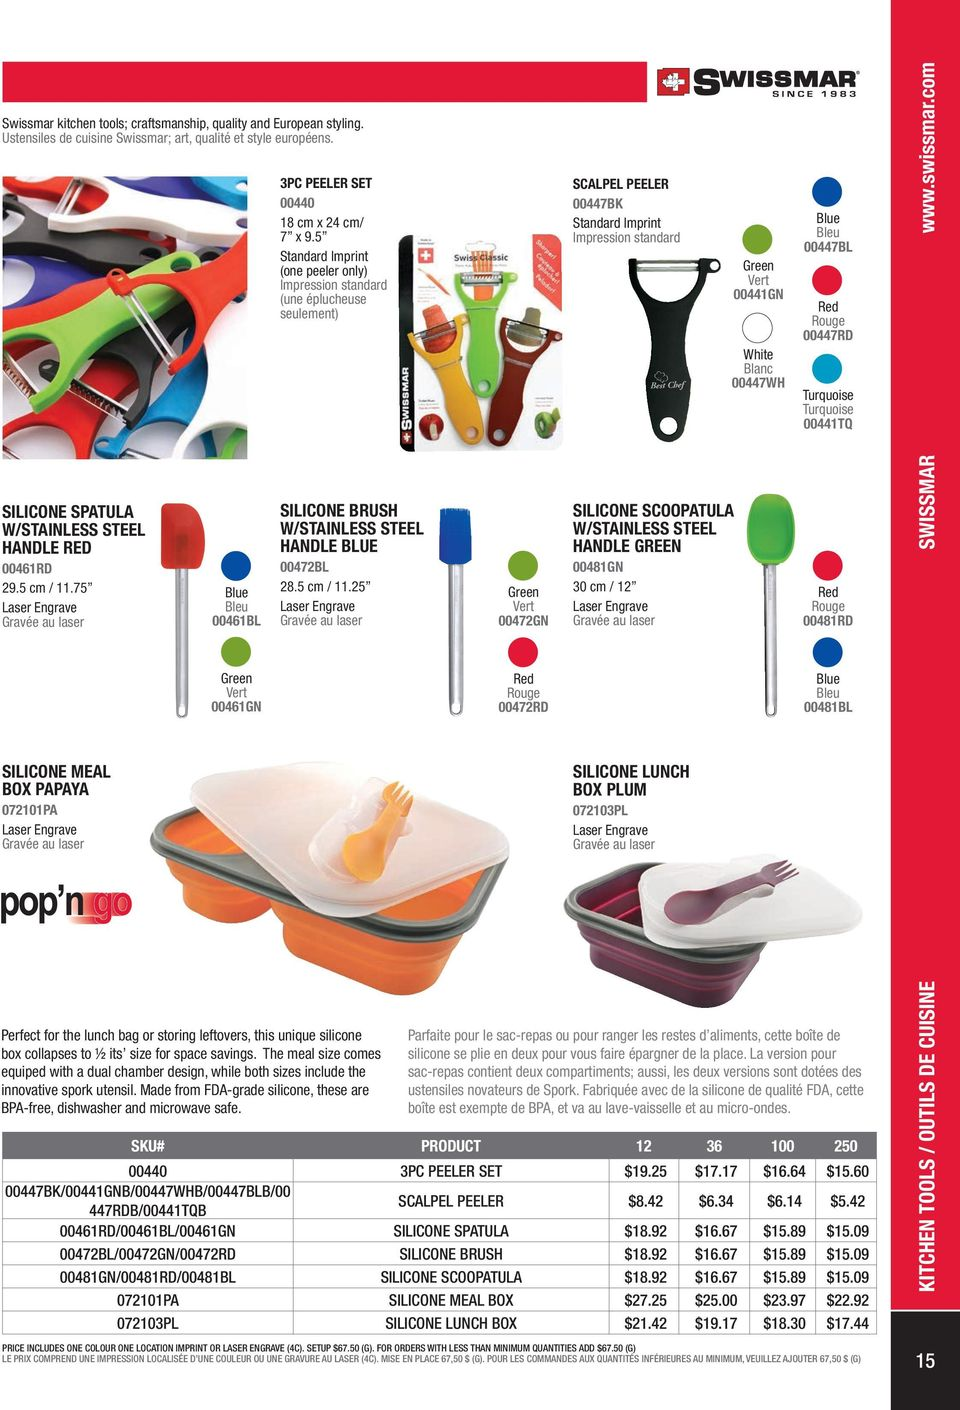 W/STAINLESS STEEL HANDLE RED 00461RD 29.5 cm / 11.75 SILICONE MEAL BOX PAPAYA 072101PA Blue Bleu 00461BL Green Vert 00461GN SILICONE BRUSH W/STAINLESS STEEL HANDLE BLUE 00472BL 28.5 cm / 11.25 Perfect for the lunch bag or storing leftovers, this unique silicone box collapses to ½ its size for space savings.